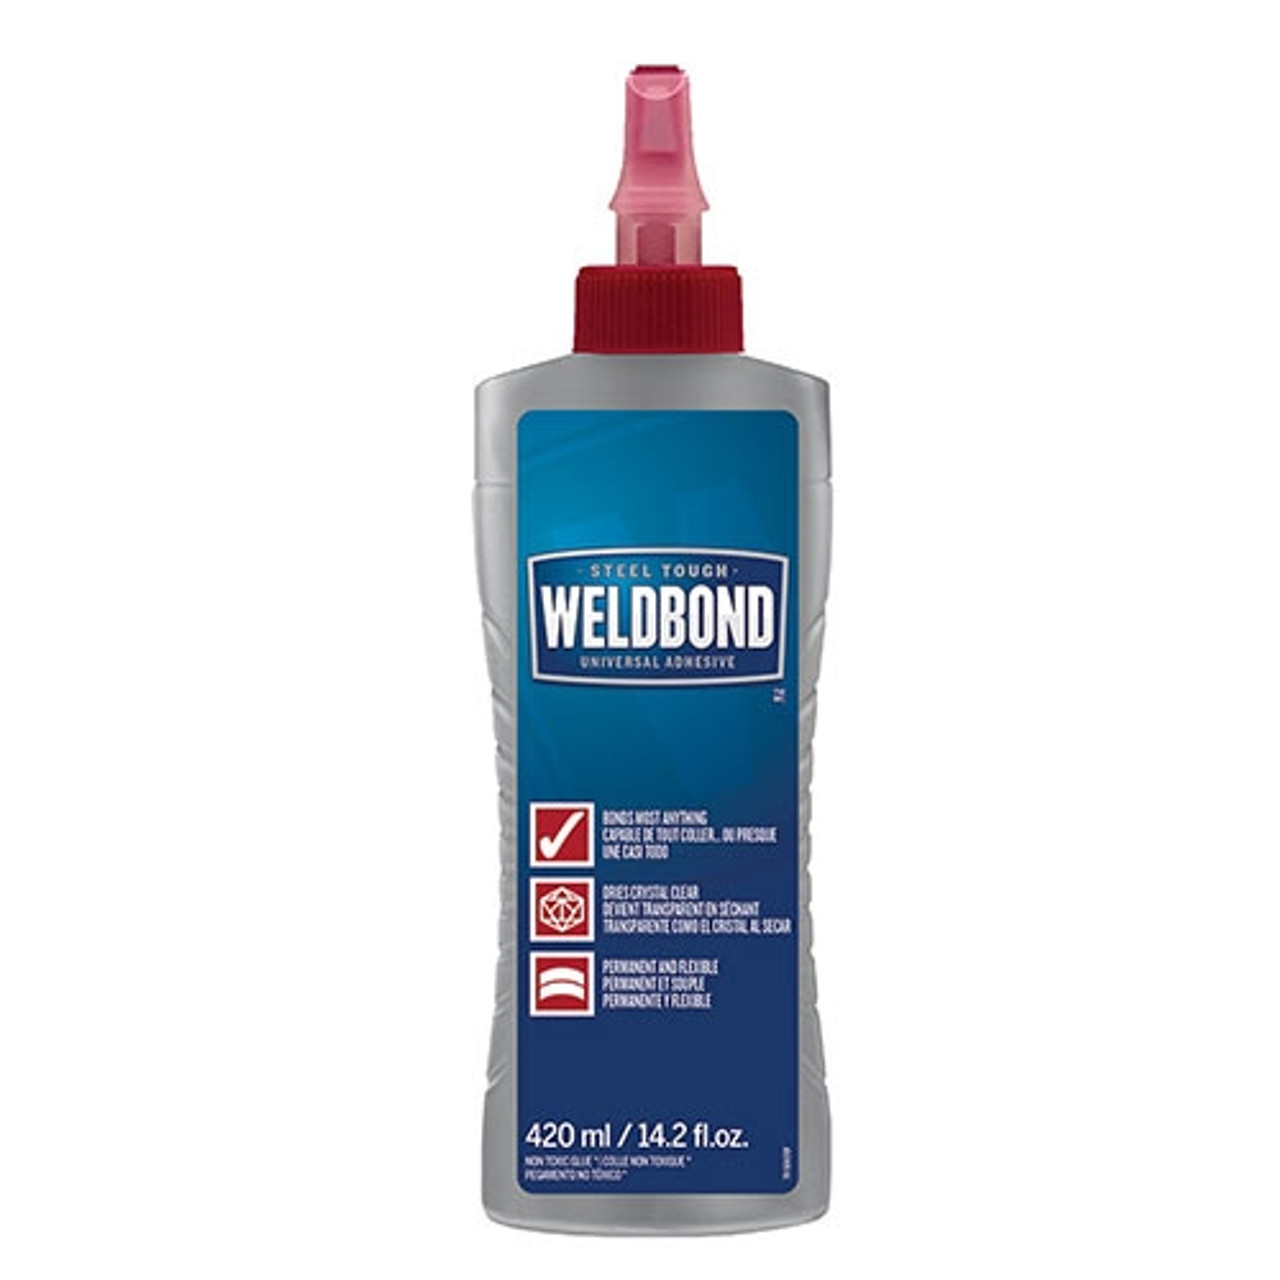 Weldbond Mosaic Adhesive 14.2 oz. Bottle